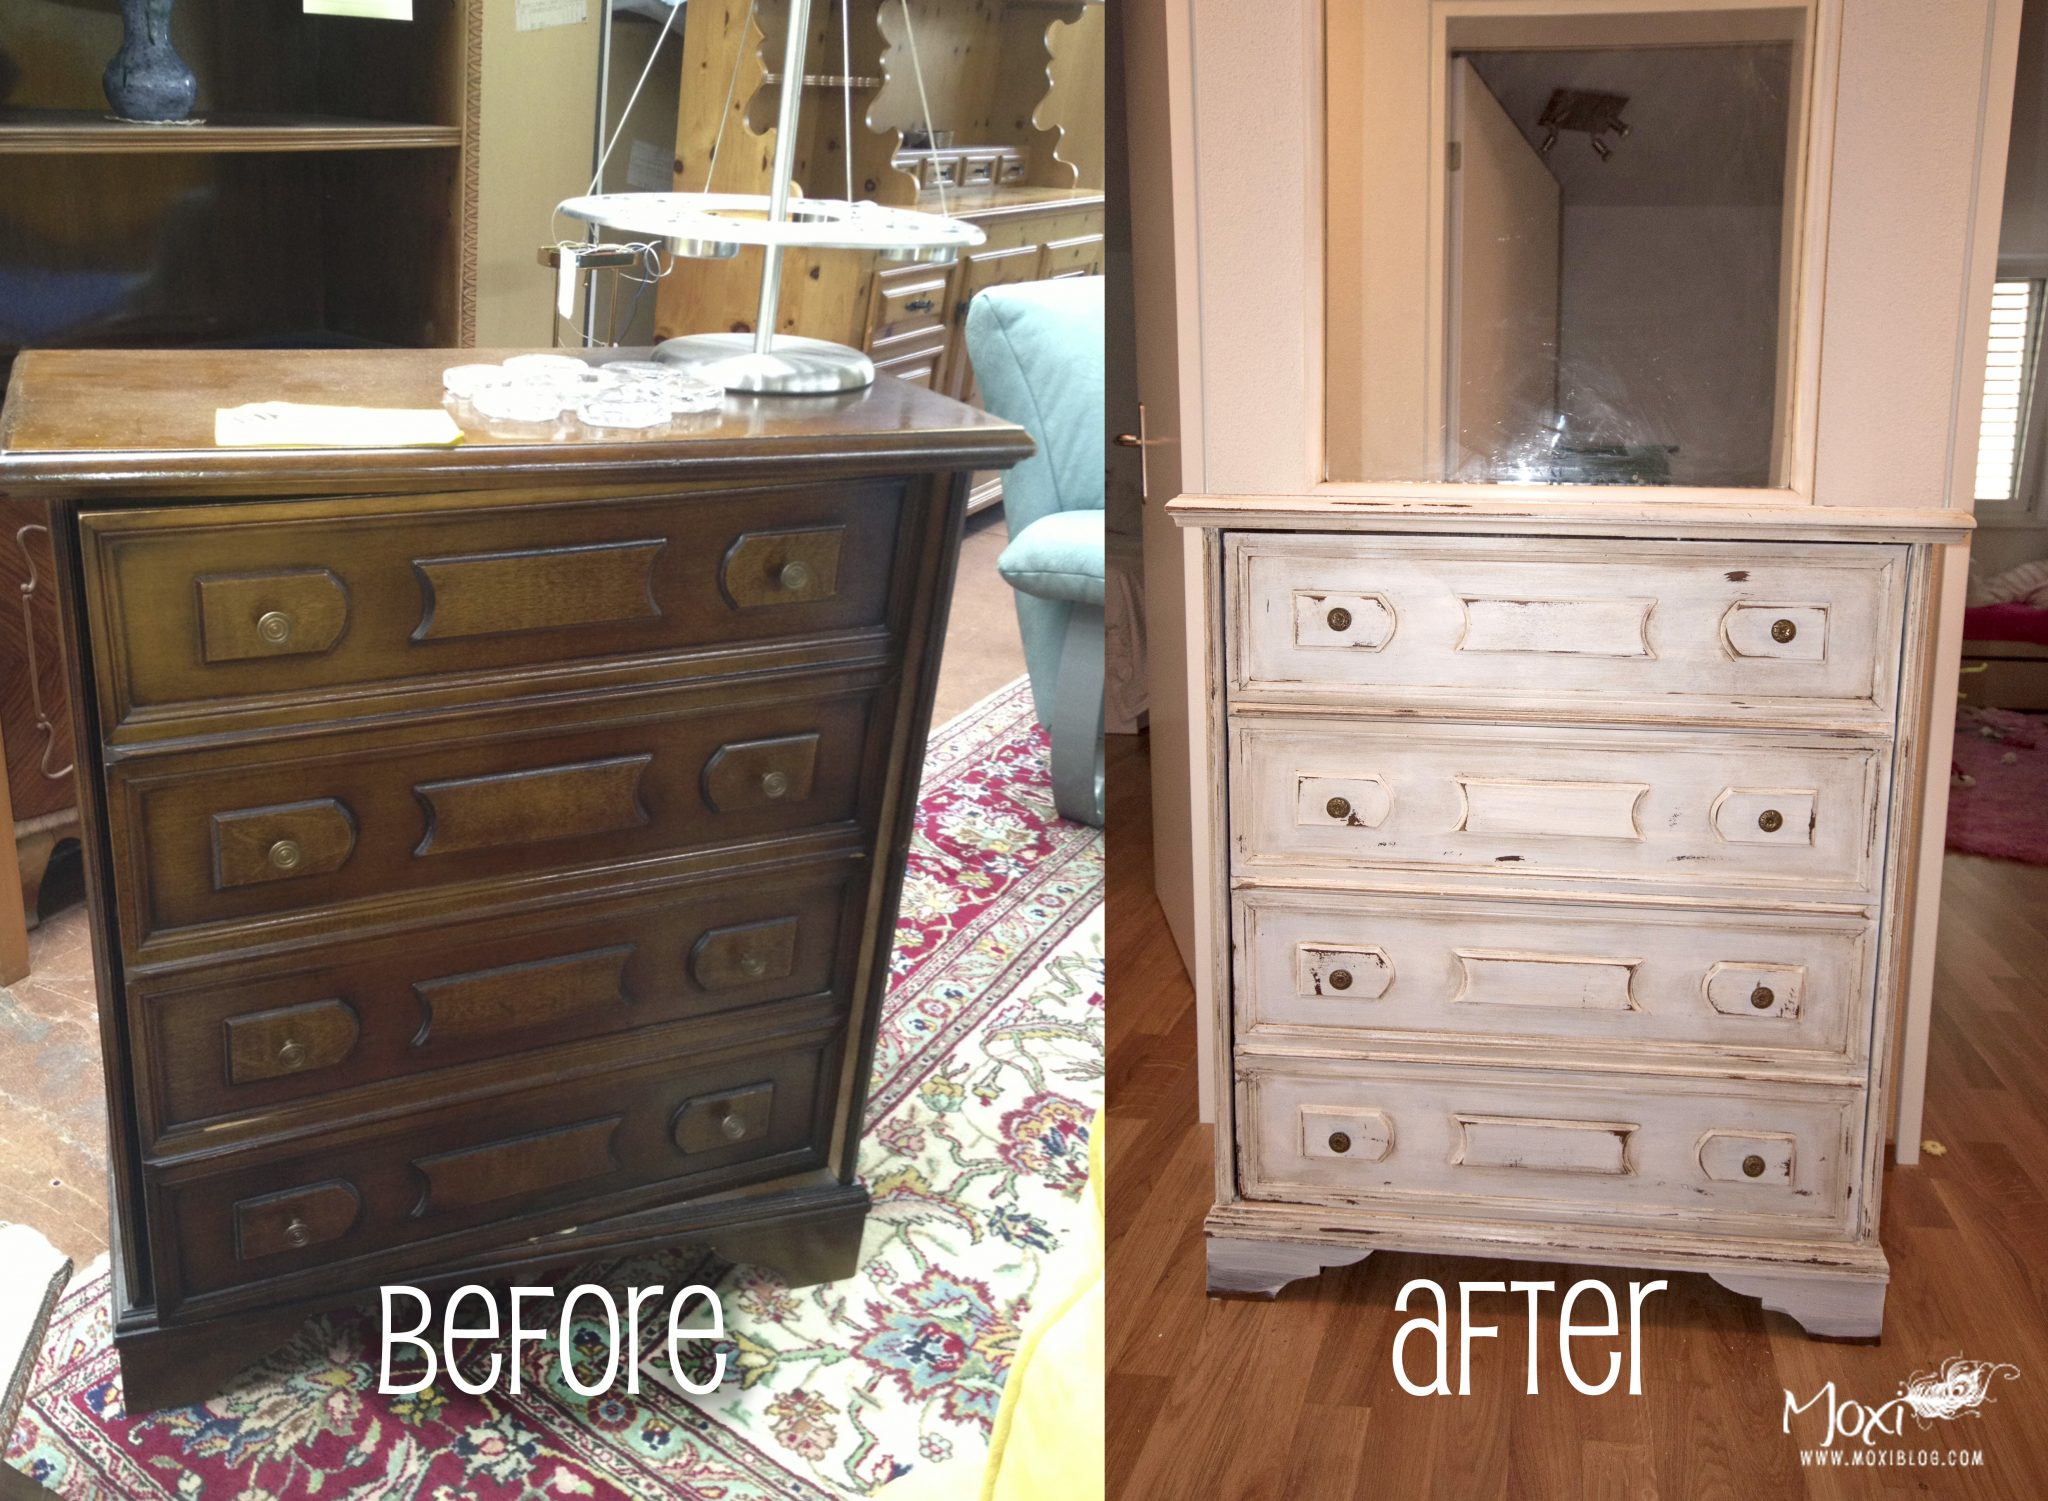 Annie sloan chalk paint moxiblog - Annie sloan kitchen cabinets before and after ...